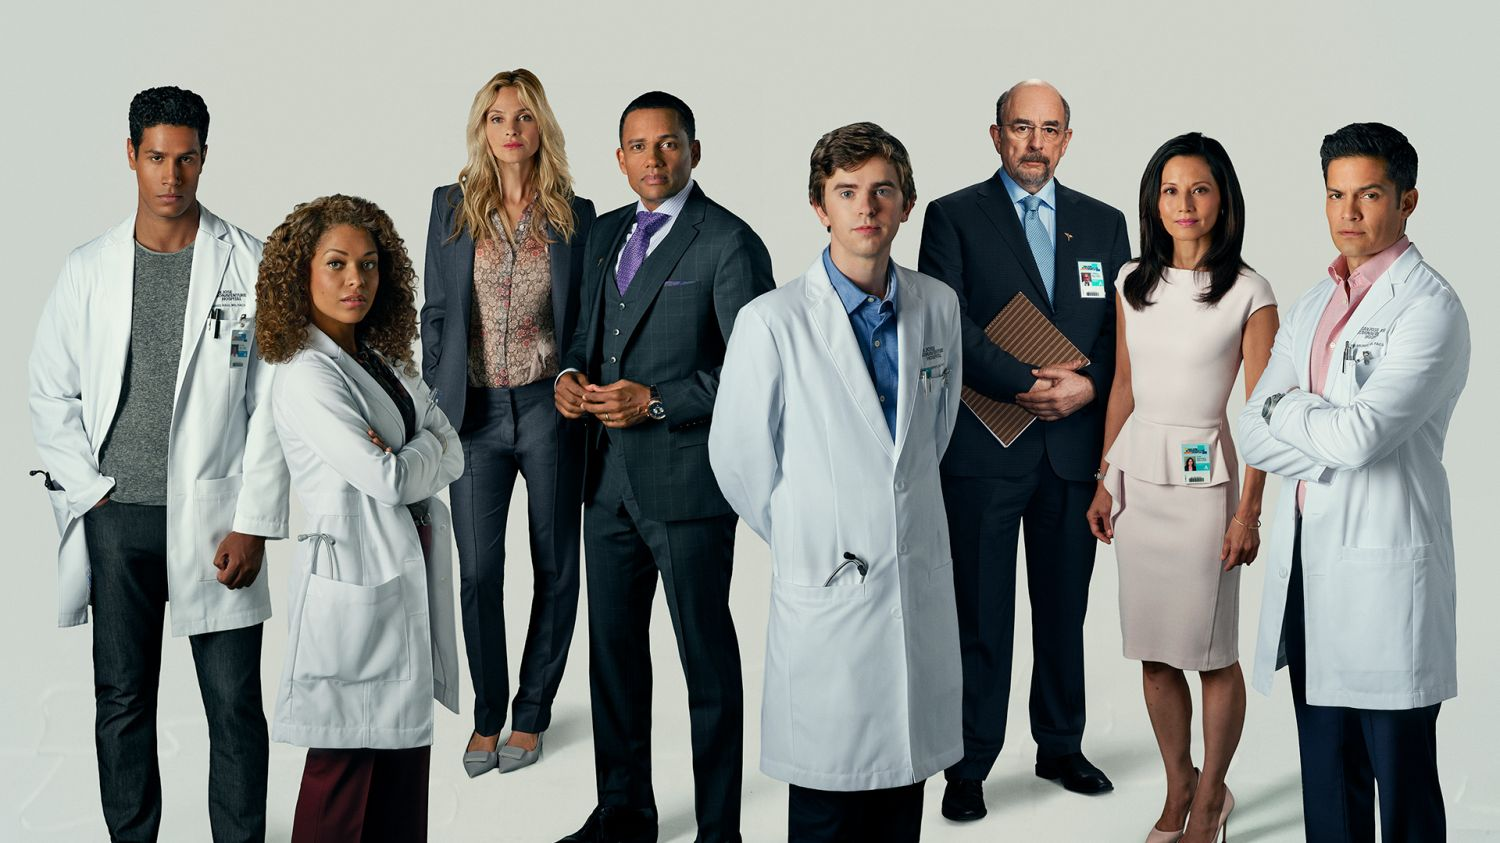 the-good-doctor-cast-1.jpg